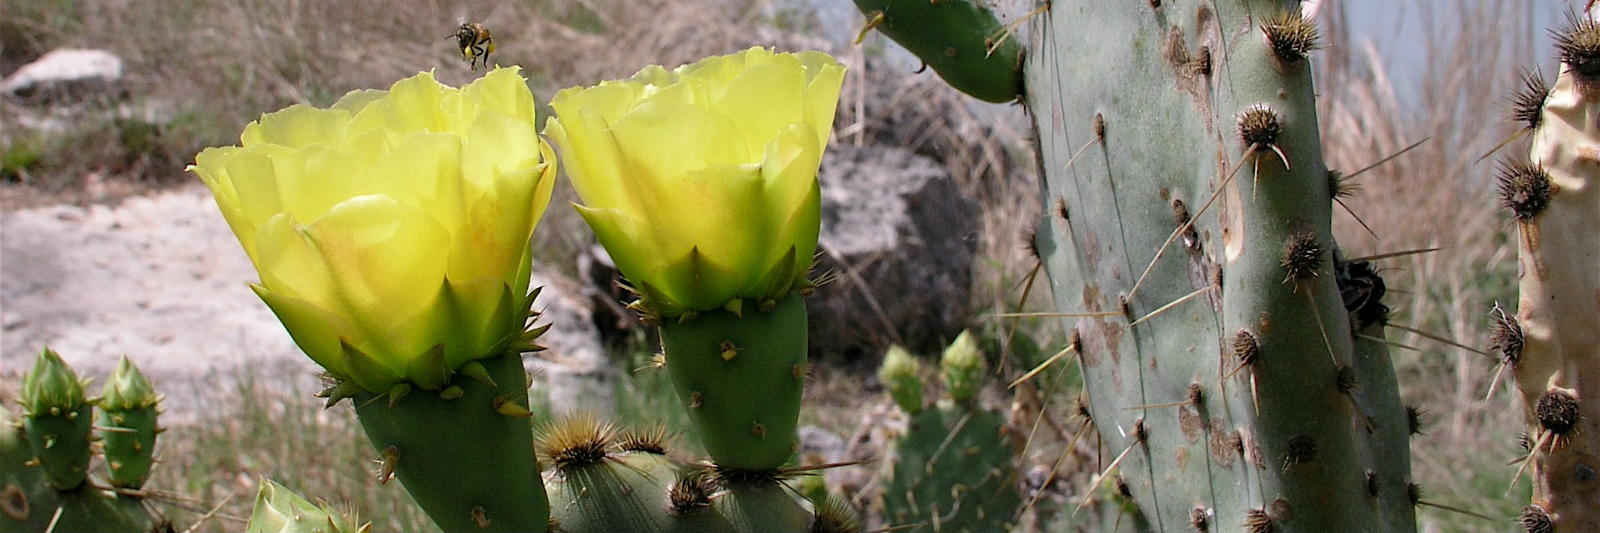 Blooming-Cactus-Texas.jpg